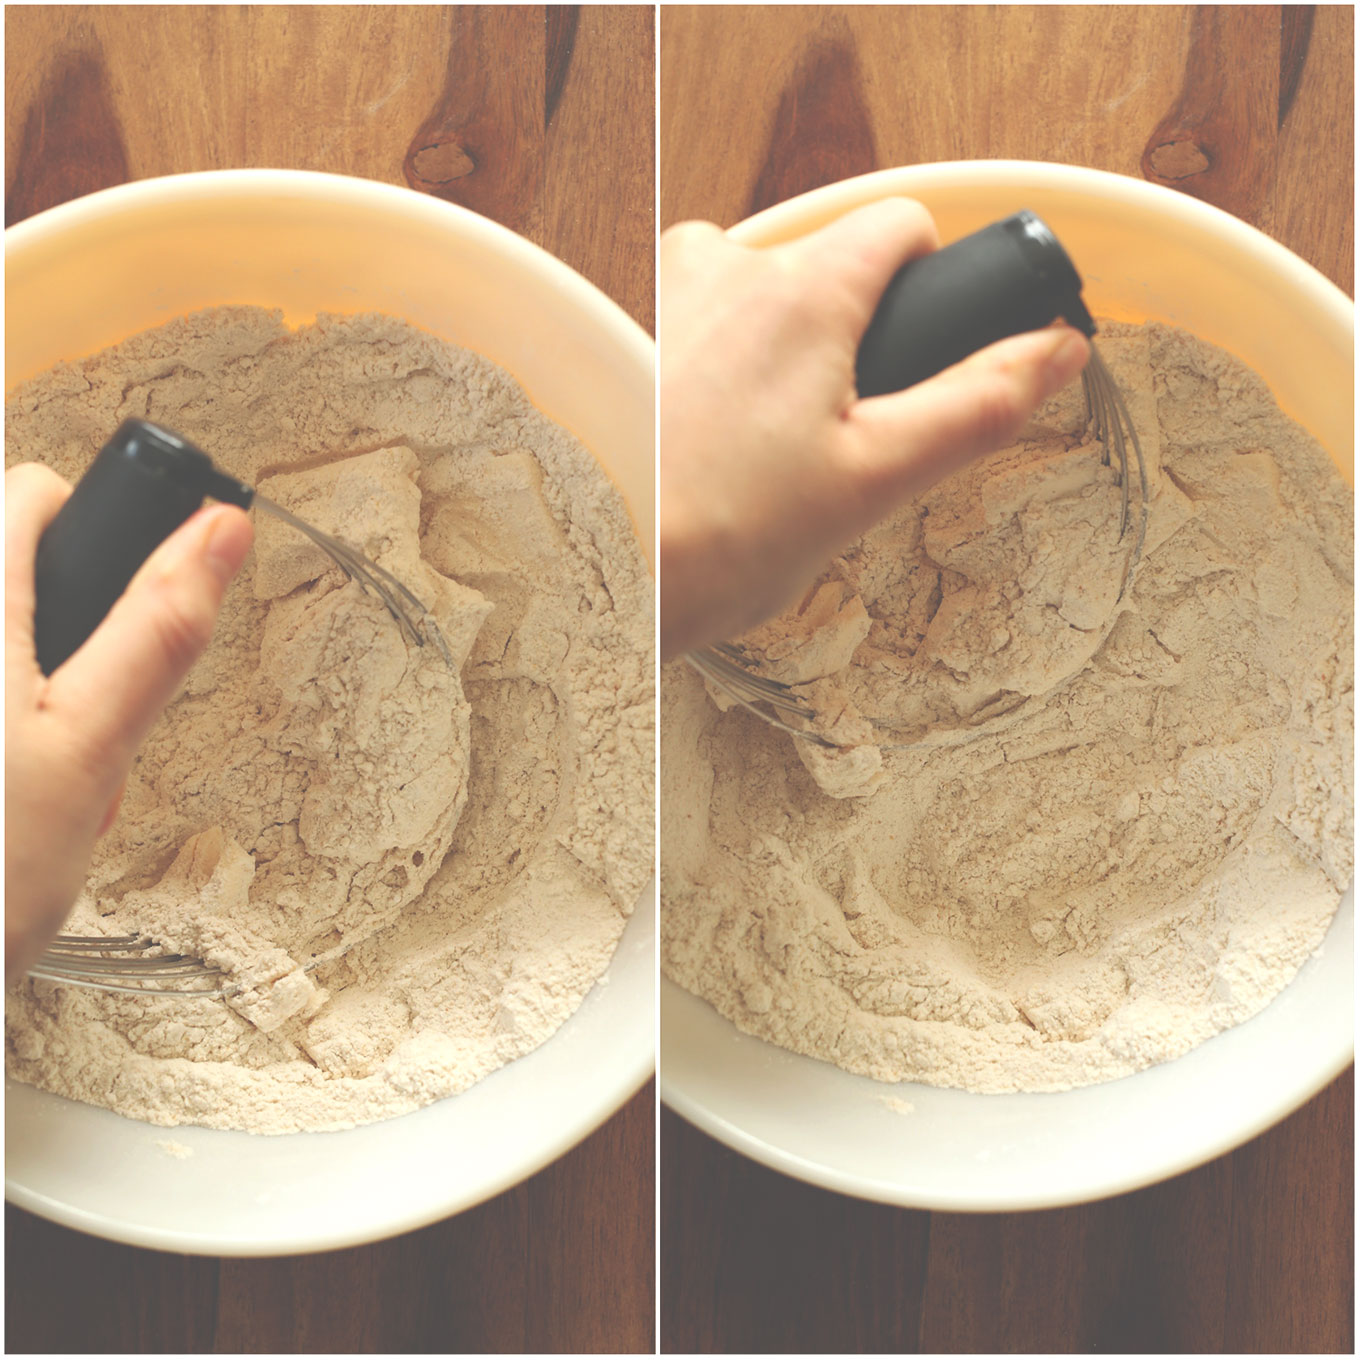 Using a pastry cutter to mix butter into flour for Pumpkin Sage Biscuits